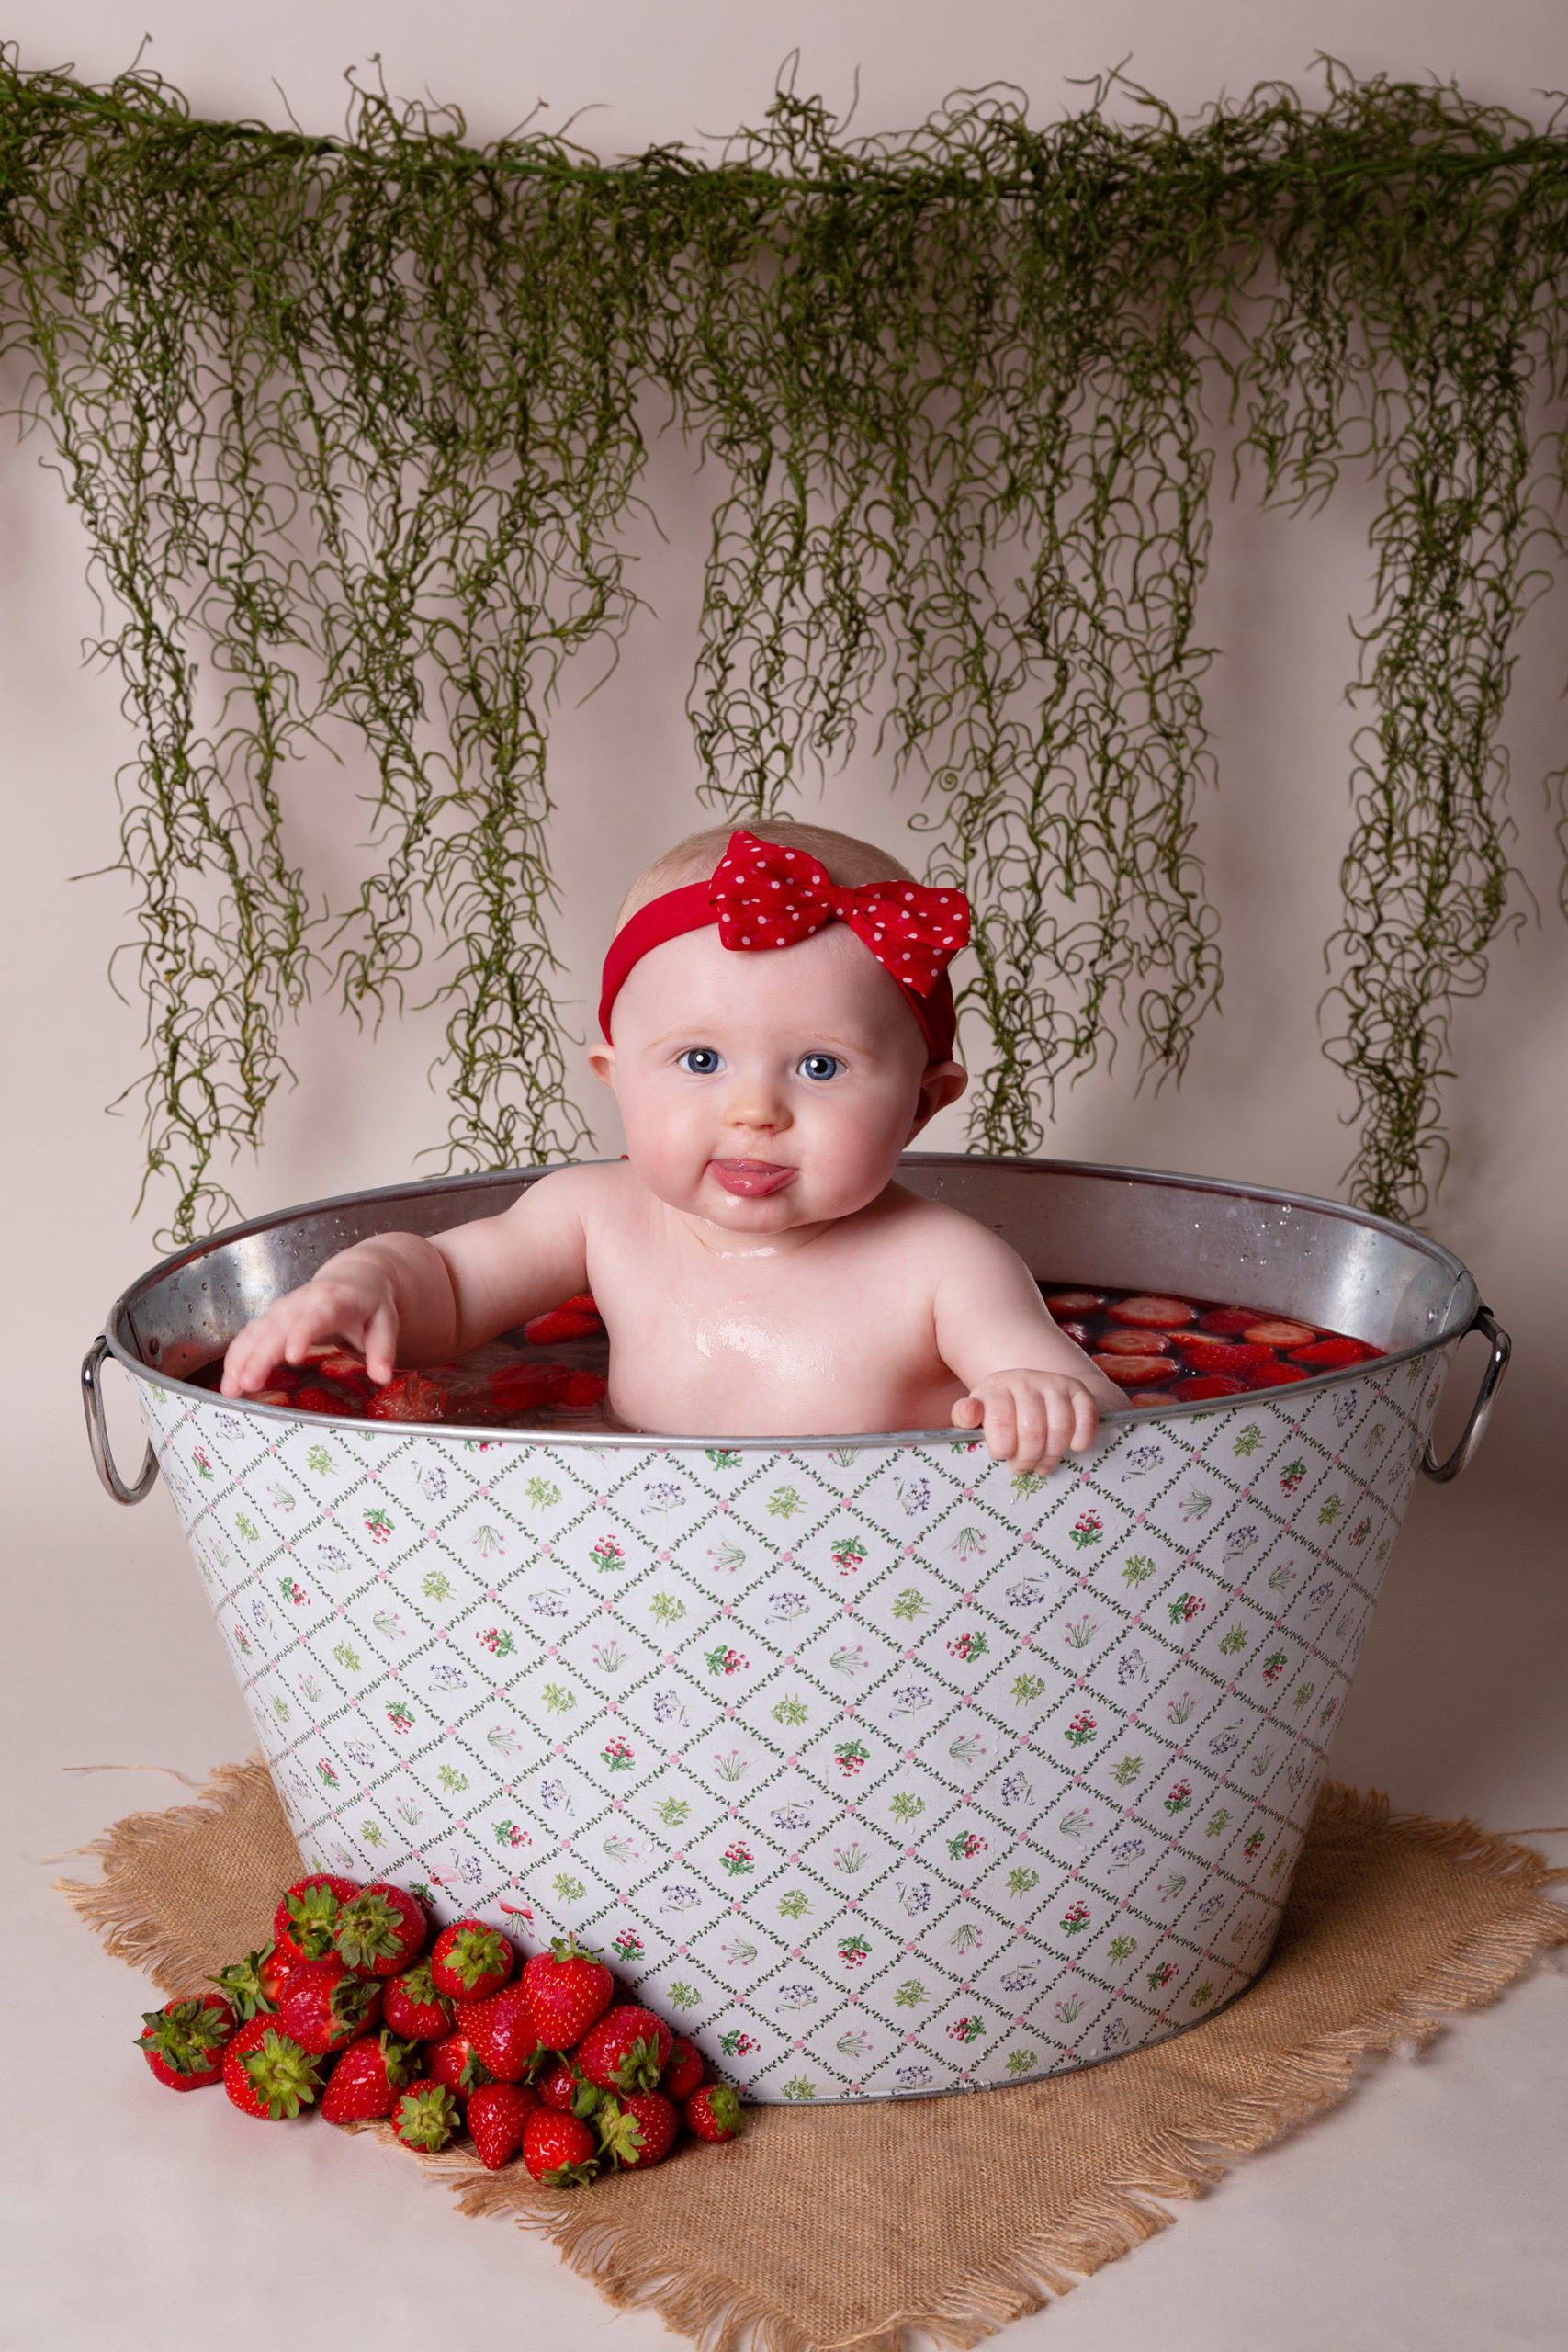 Strawberry splash sitter session sutton coldfield